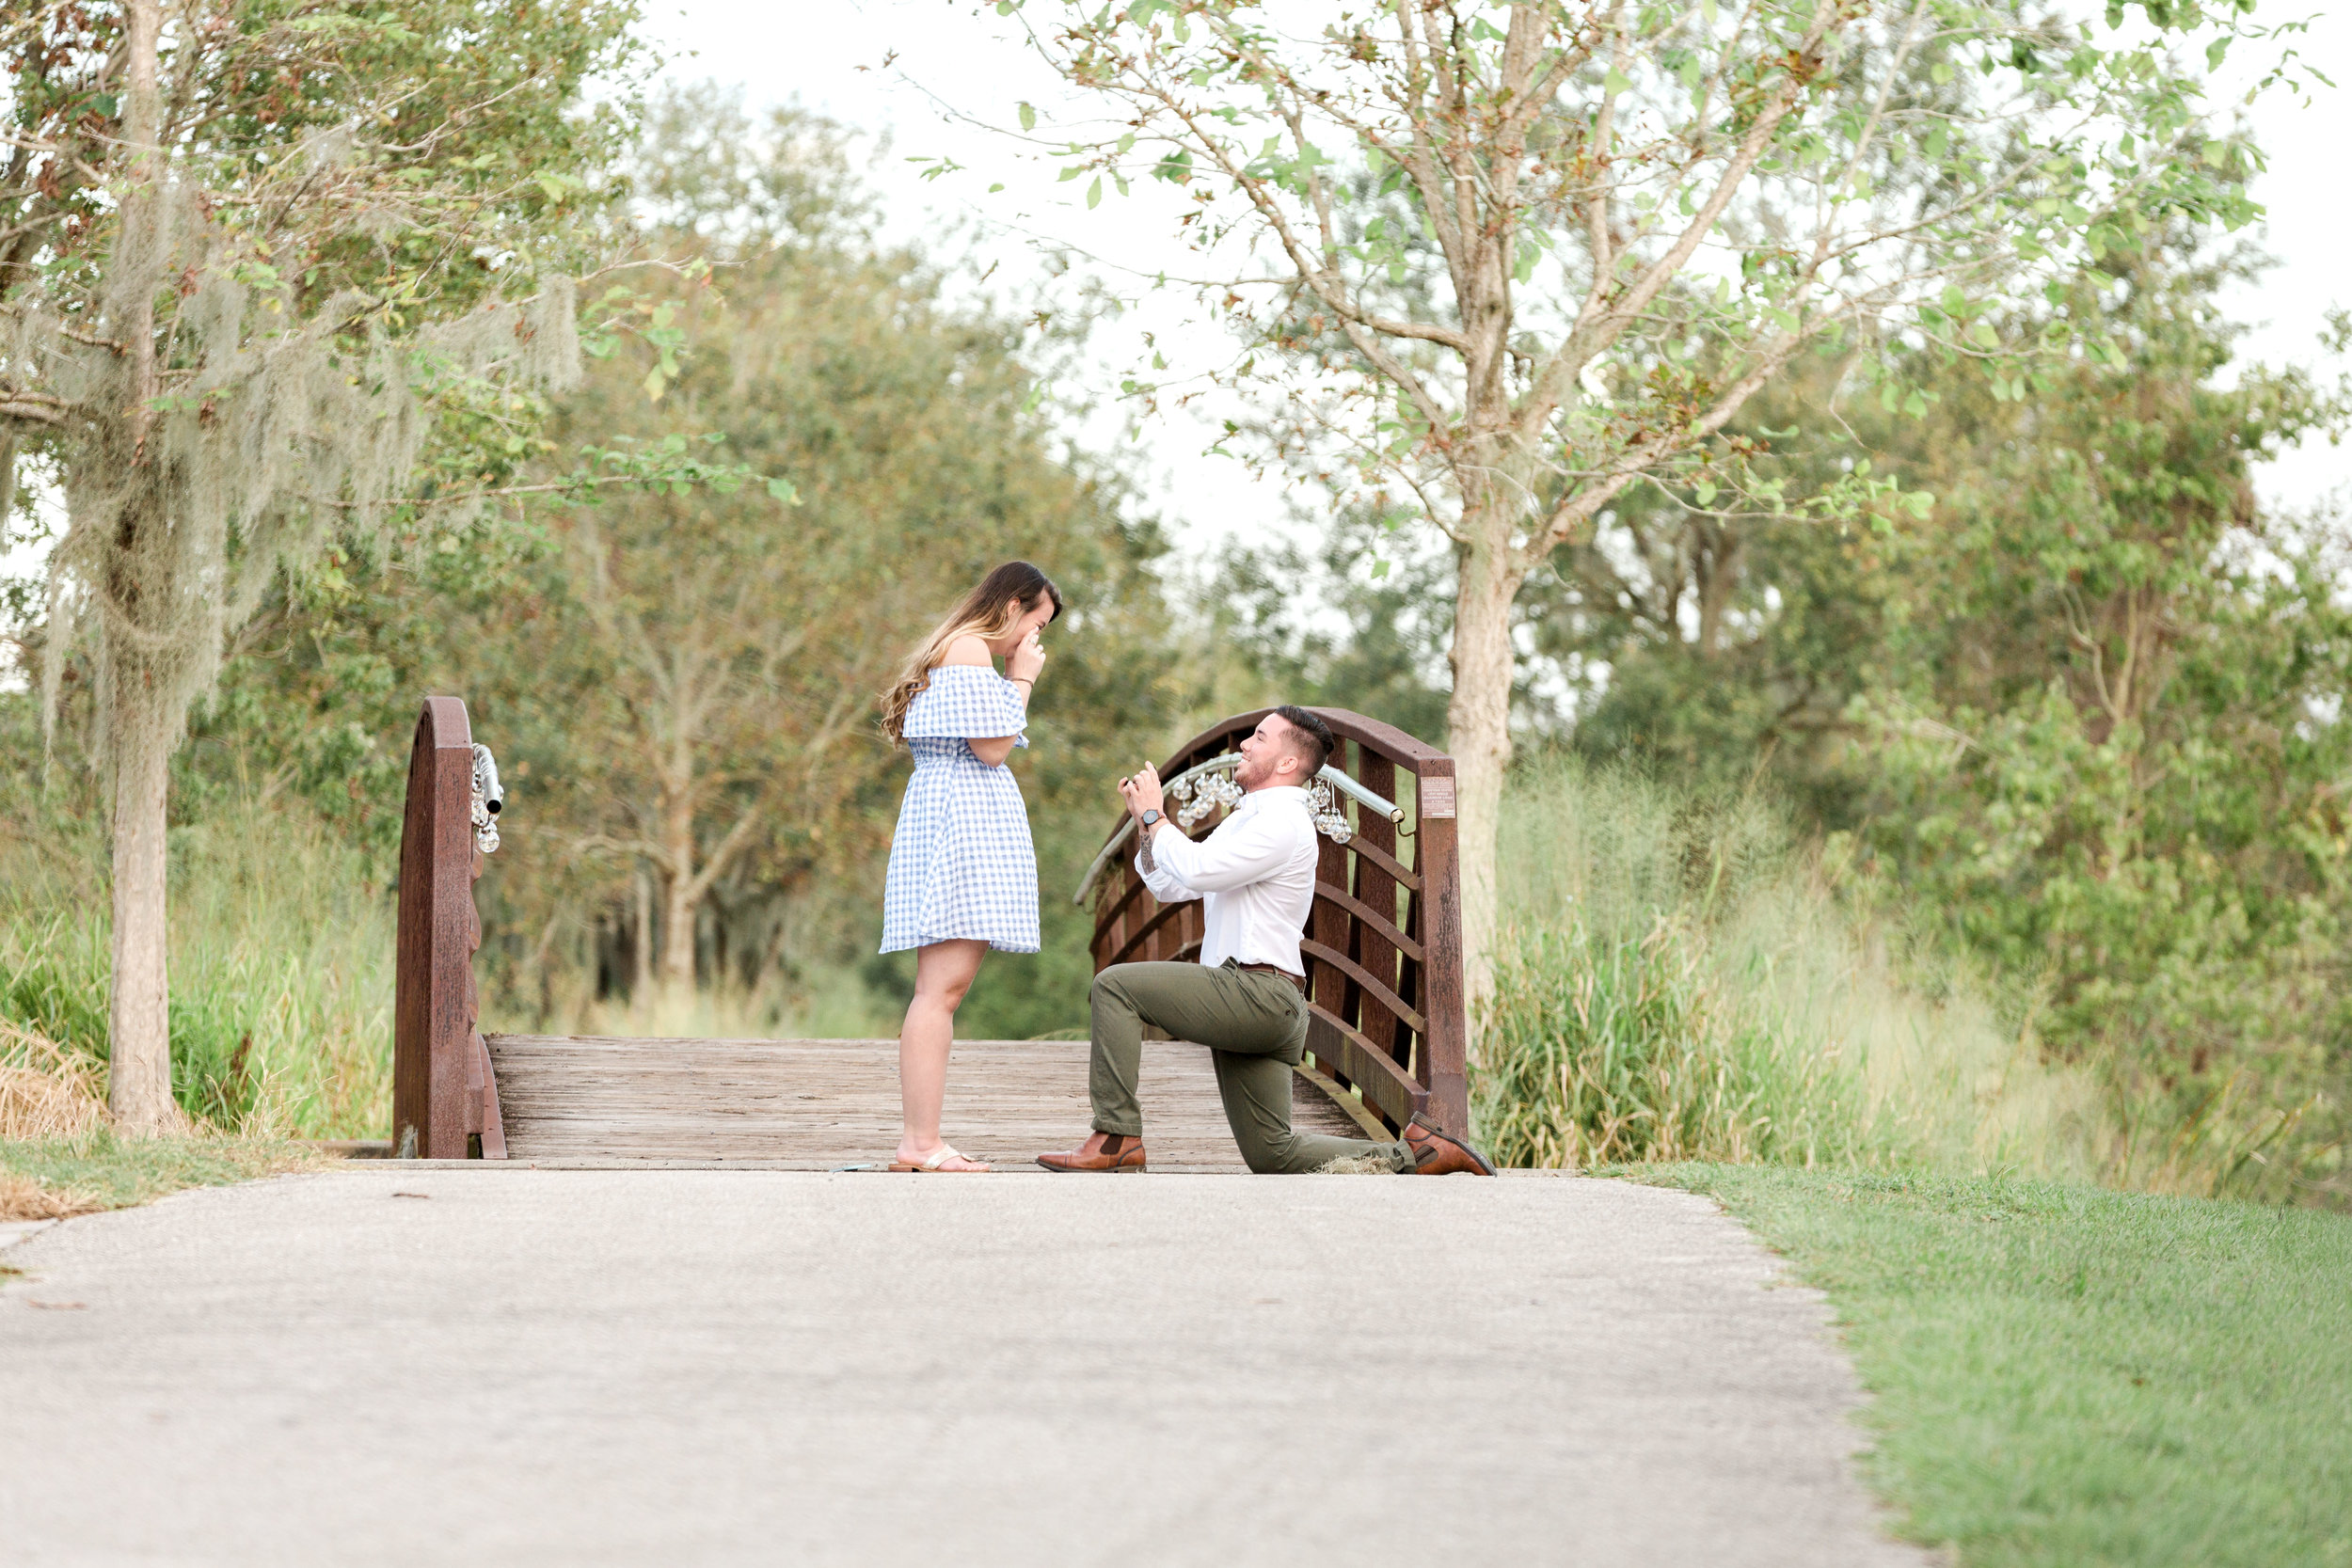 peterson-park-lakeland-engagement-photos-knee.jpg